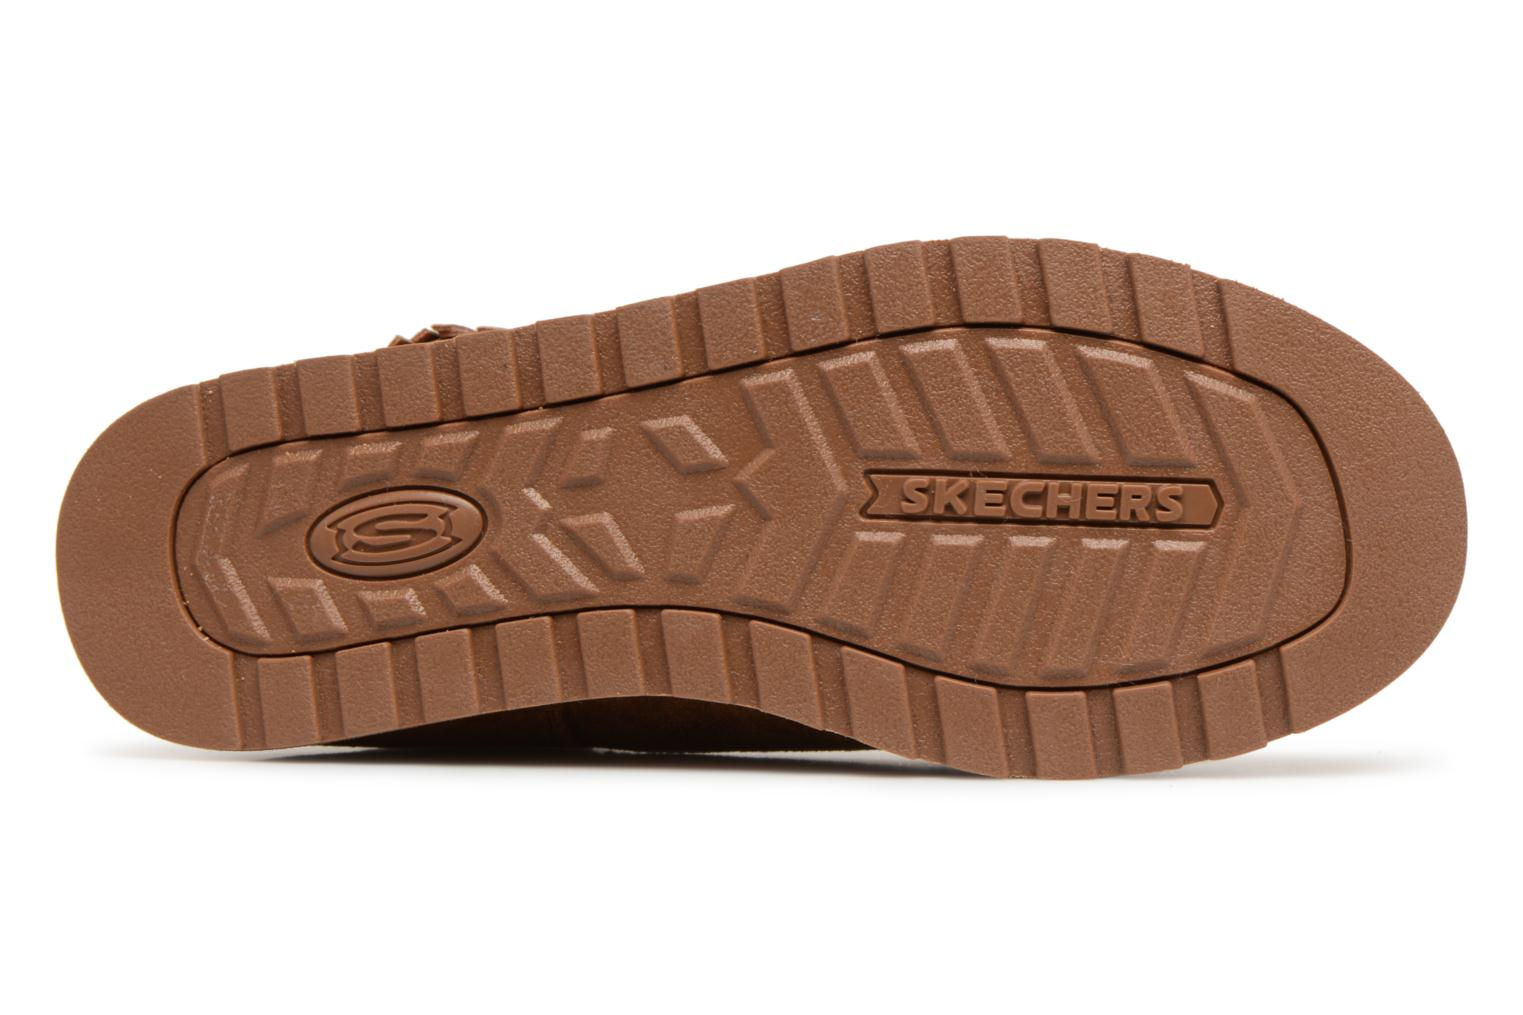 Keepsakes Keepsakes Csnt Skechers Keepsakes Tribute Csnt Skechers Tribute Skechers ZwU6ORx